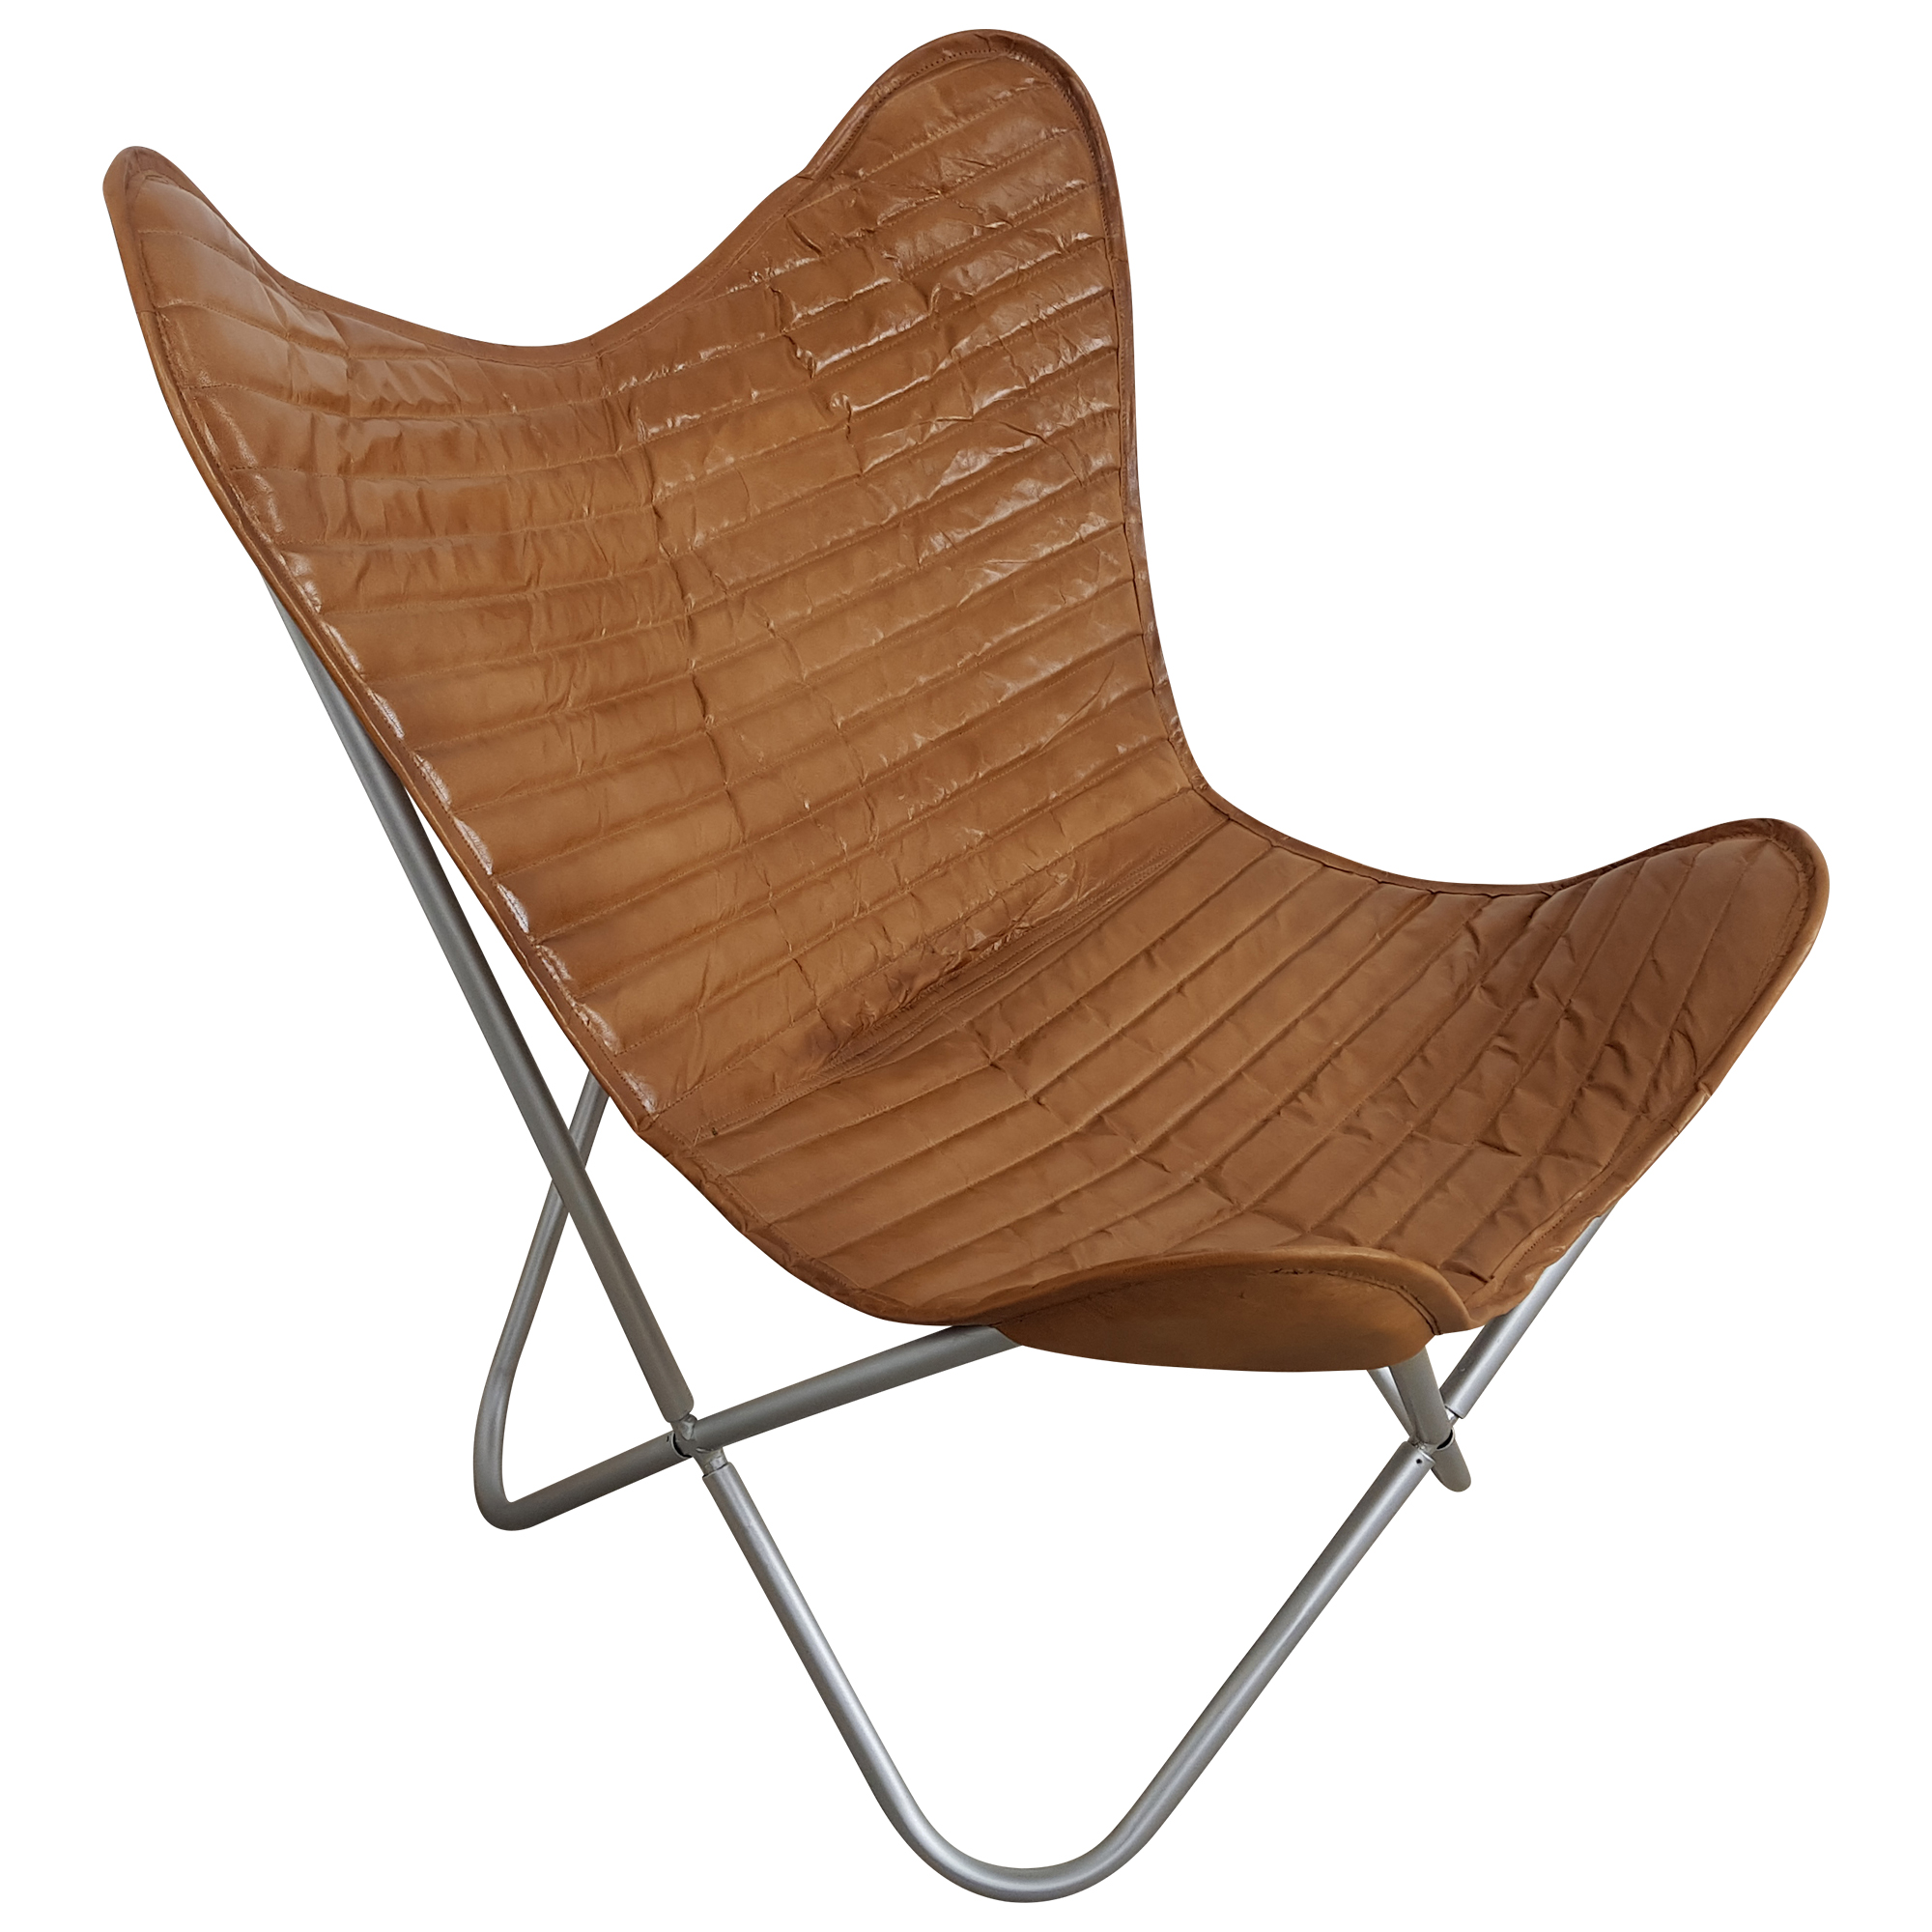 Sessel Einzelstücke Butterfly Chair Sessel Design Lounge Stuhl Echt Leder Braun Loungesessel Retro